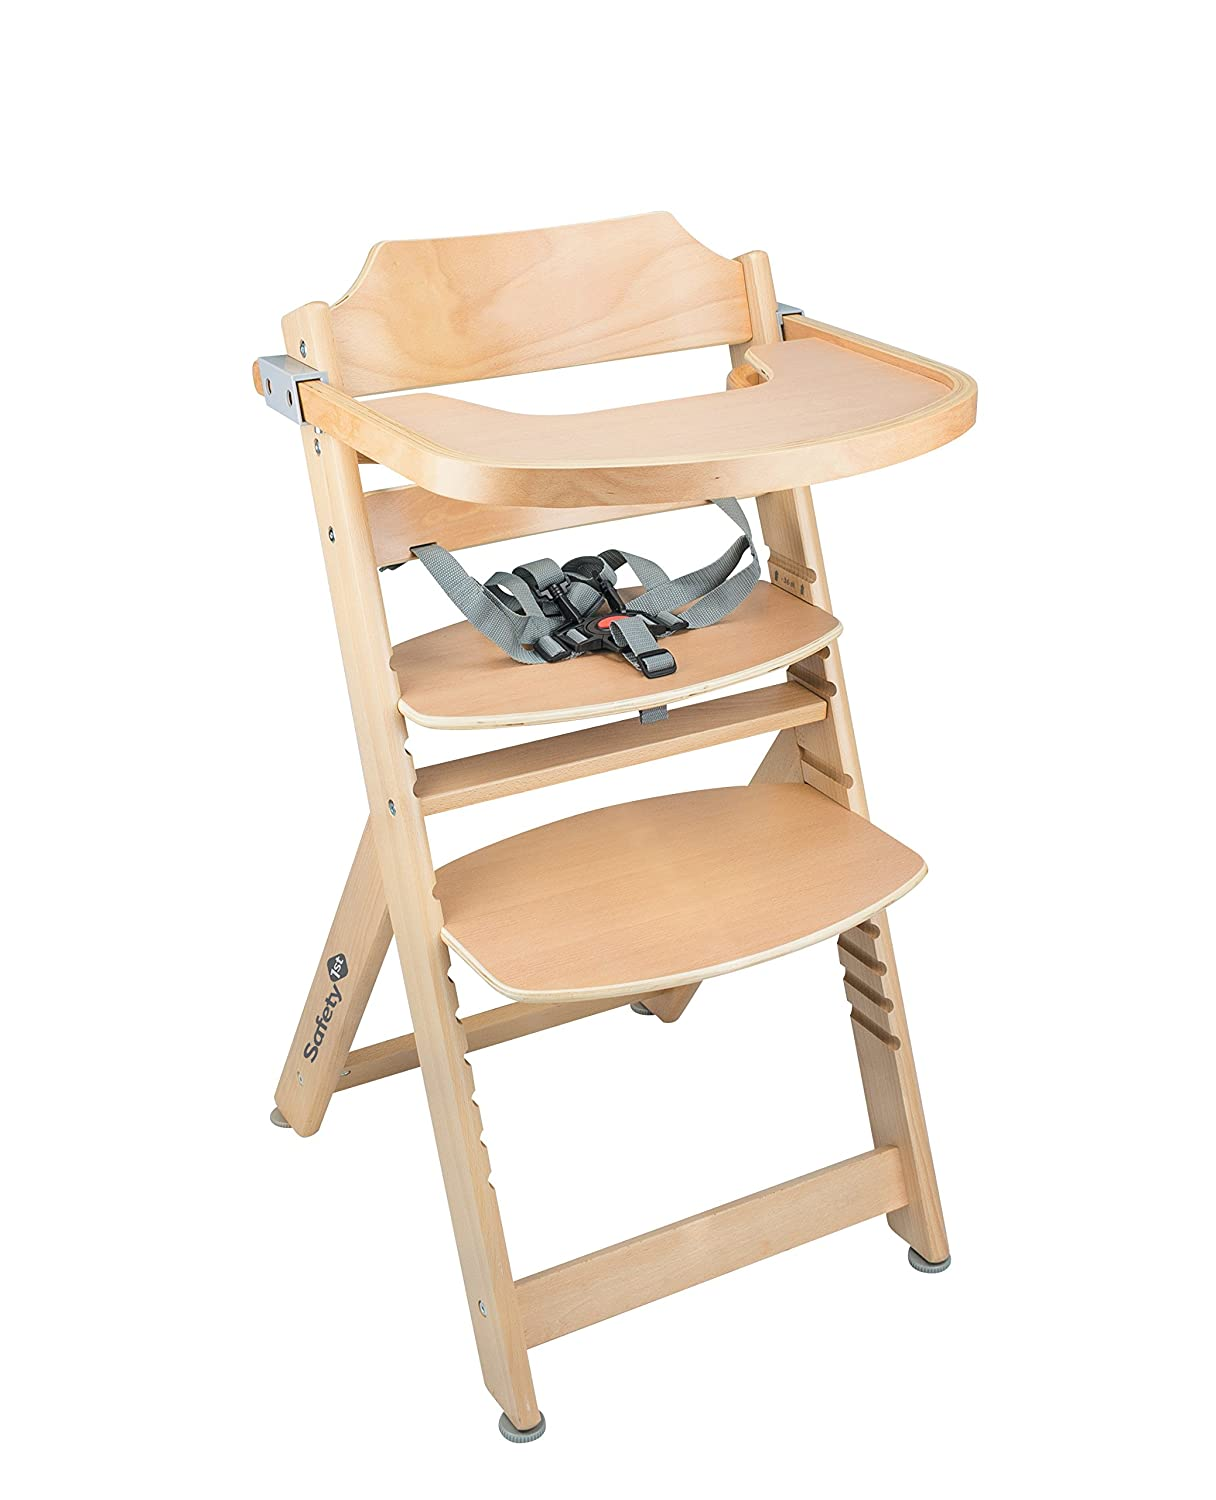 8790032cc5350 5) Safety First Timber Infant High Chair Review